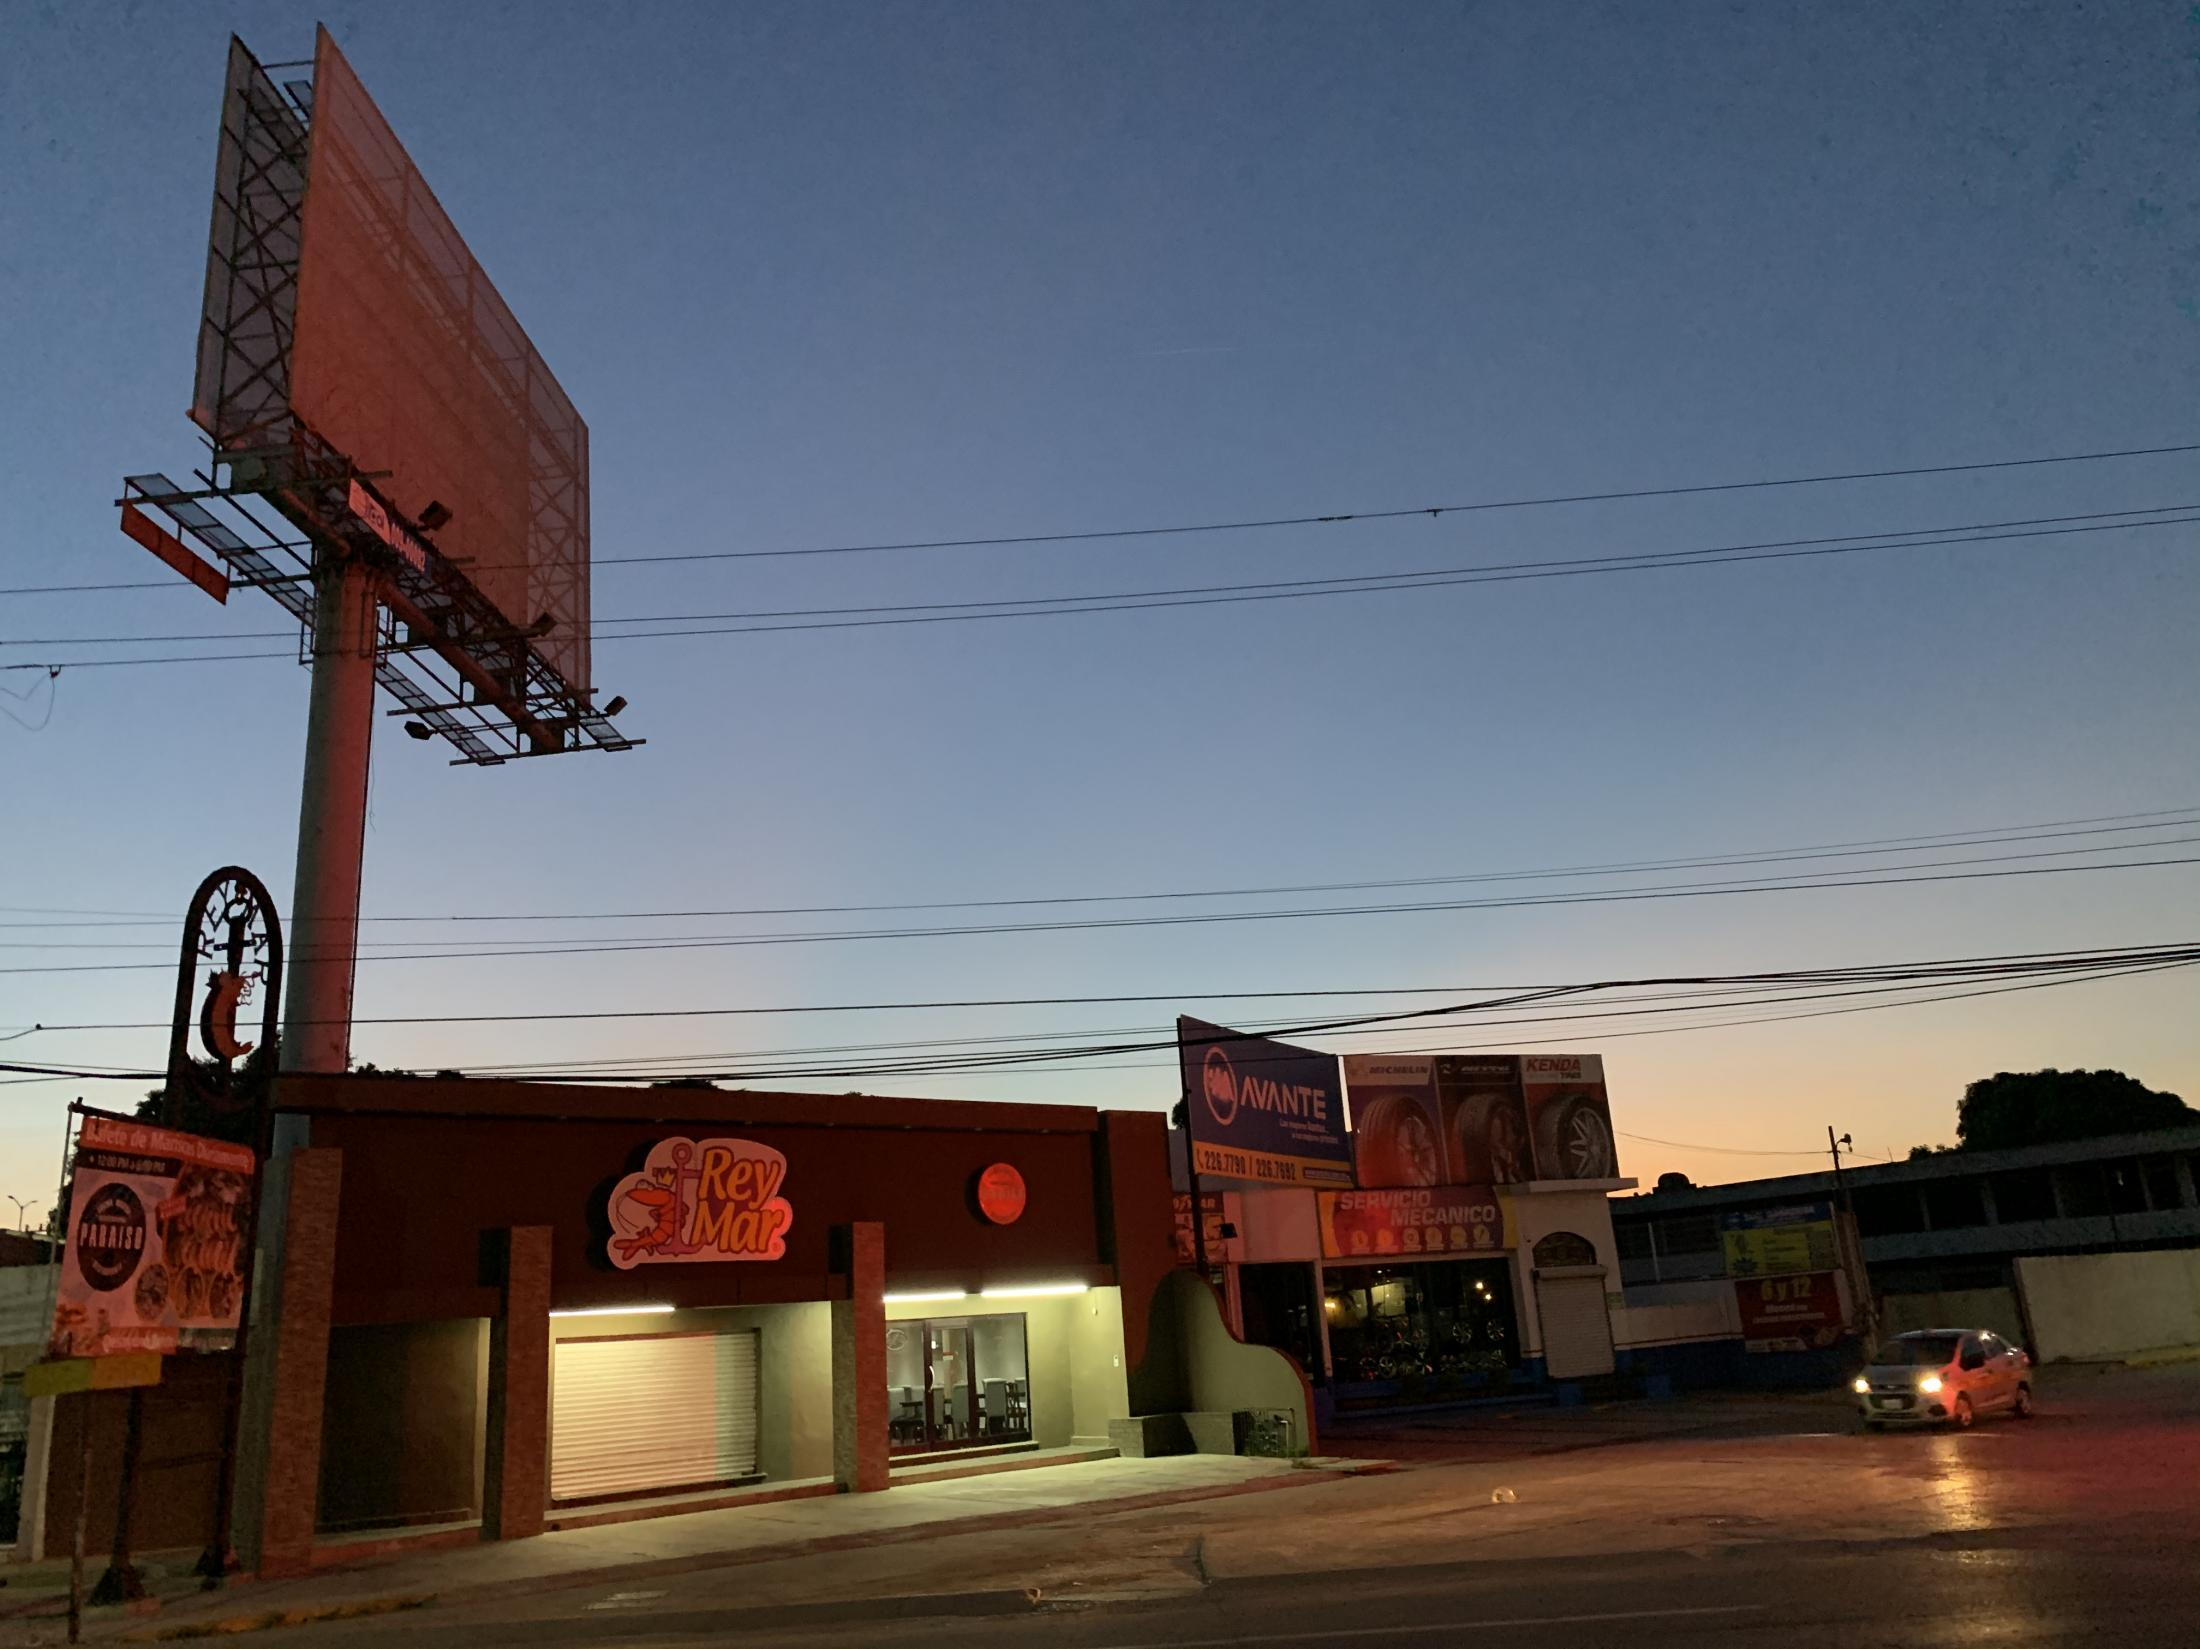 Altamira, Tamaulipas, México. 2019. Small commercial space and billboard with bright red light reflected on it. I was forced to walk more than regular to my university because I had not been paying attention and missed thebus stop where I got off.